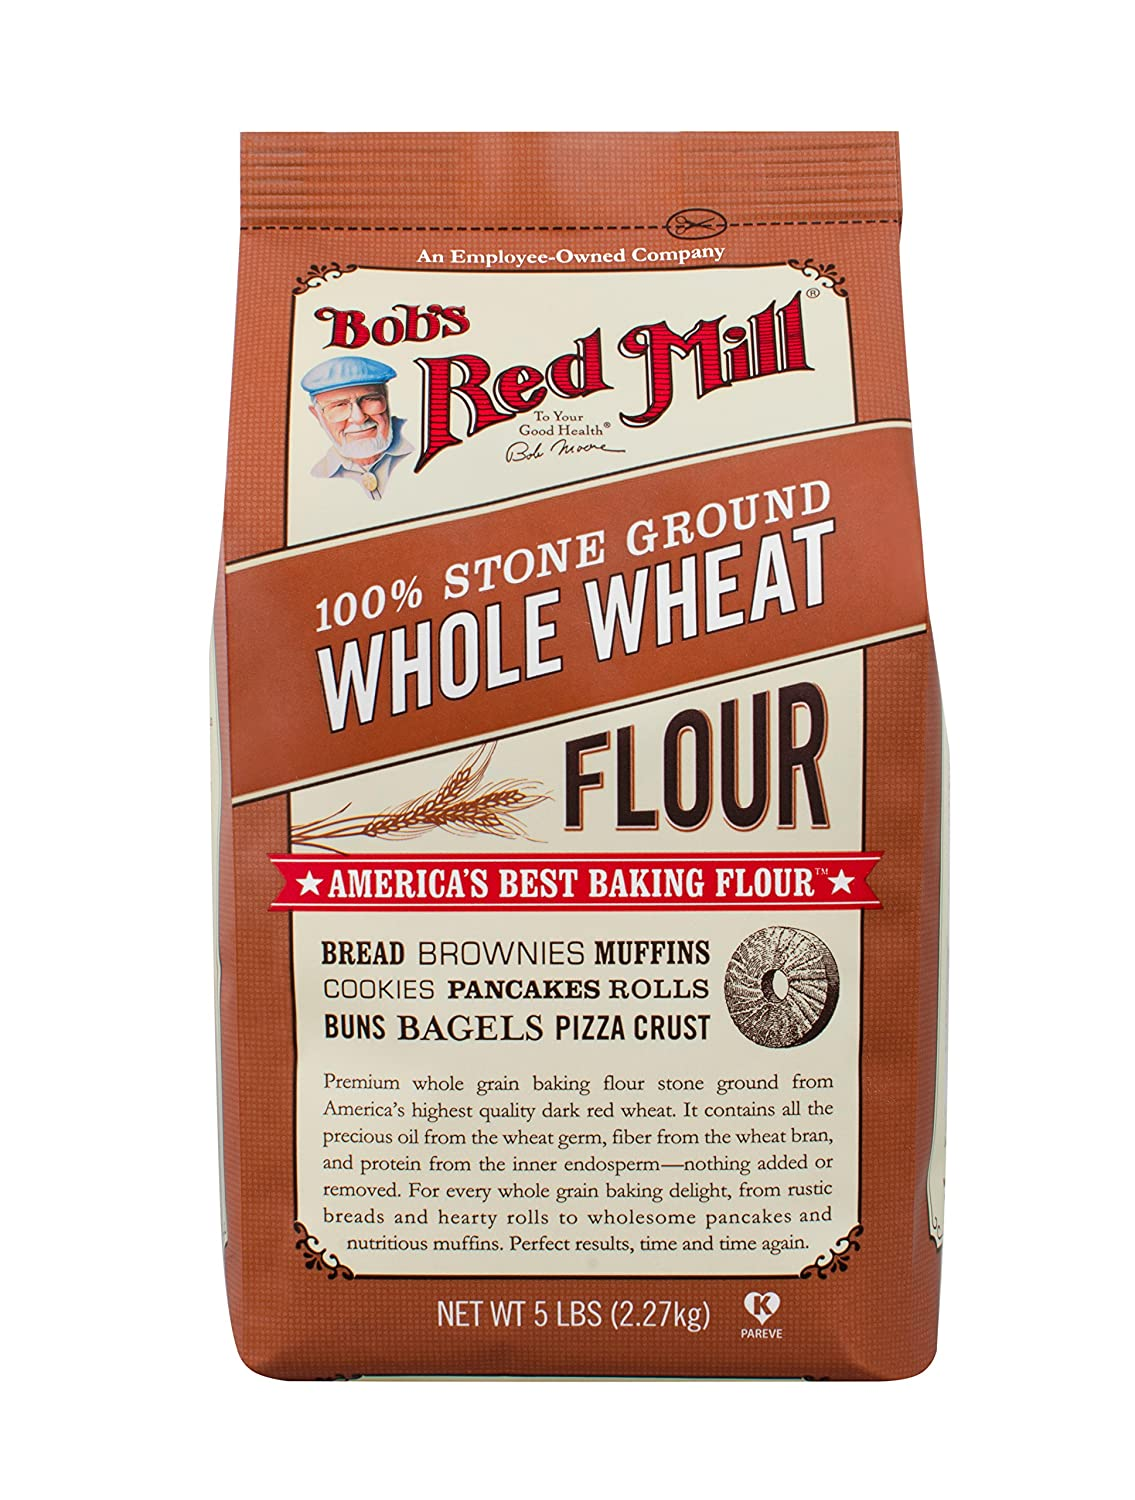 Bob's Red Mill Whole Wheat Flour - 5 lb (Pack of 1)